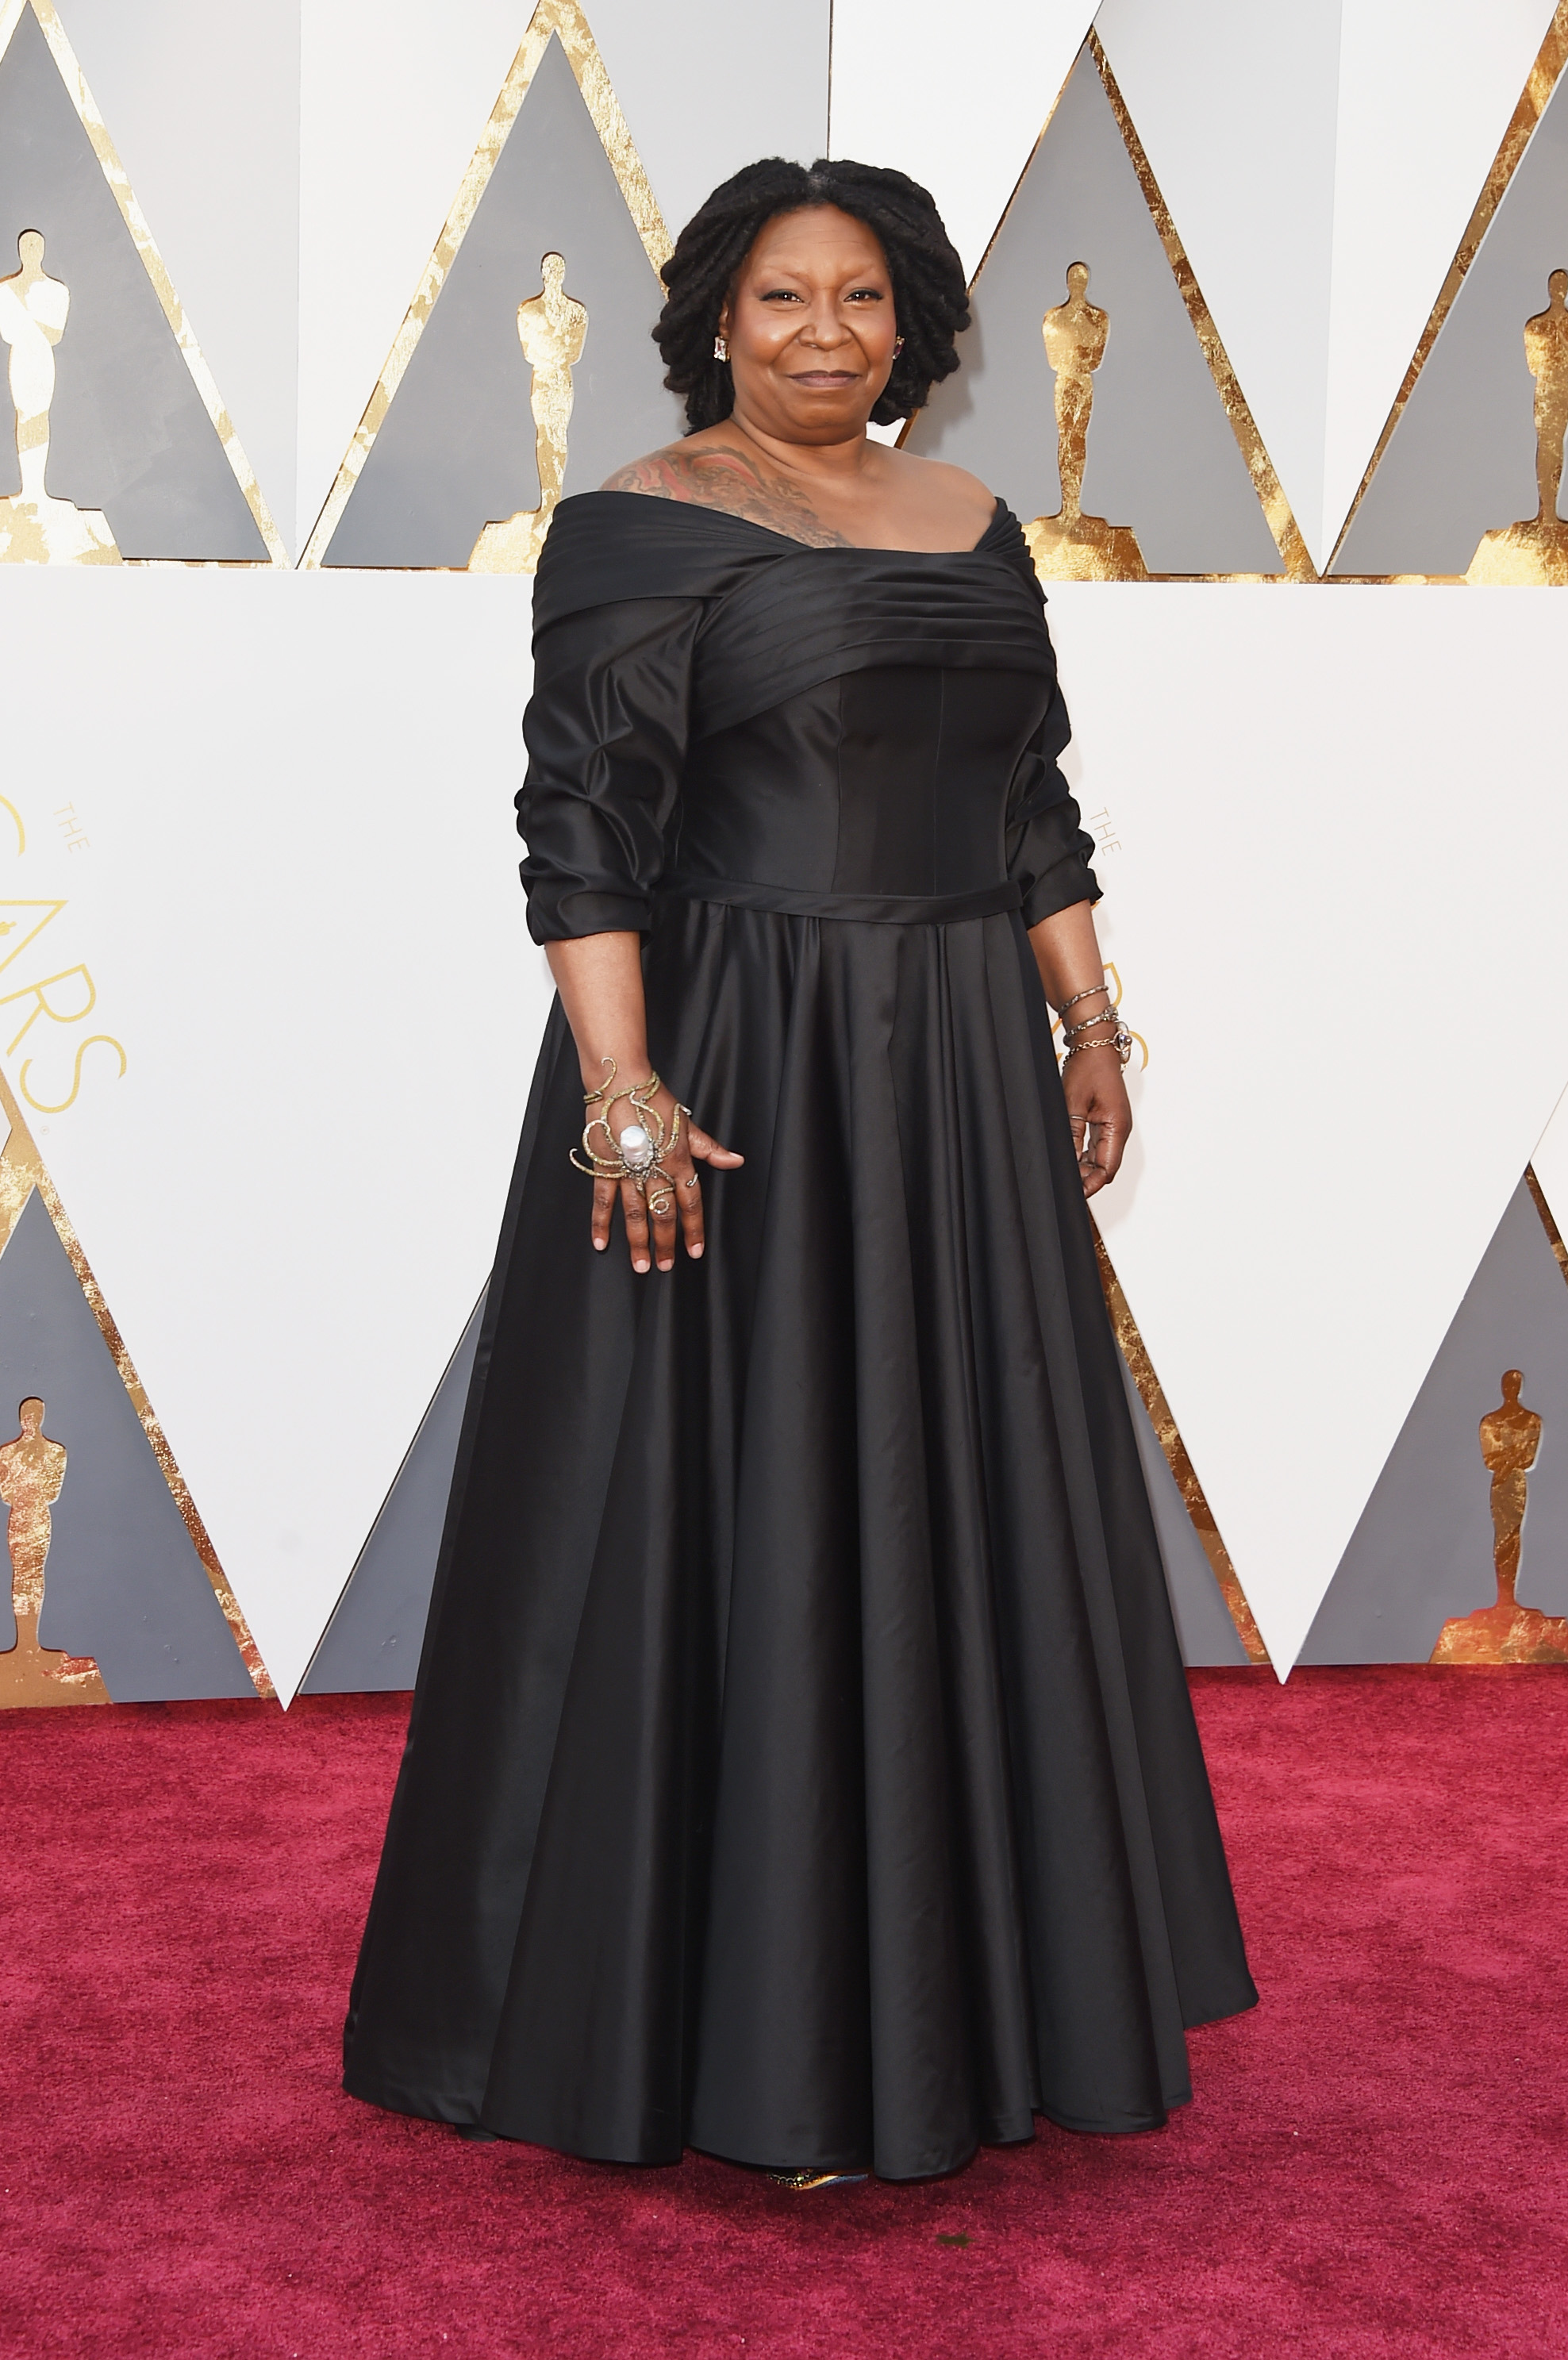 Whoopi Goldberg attends the 88th Annual Academy Awards on Feb. 28, 2016 in Hollywood, Calif.